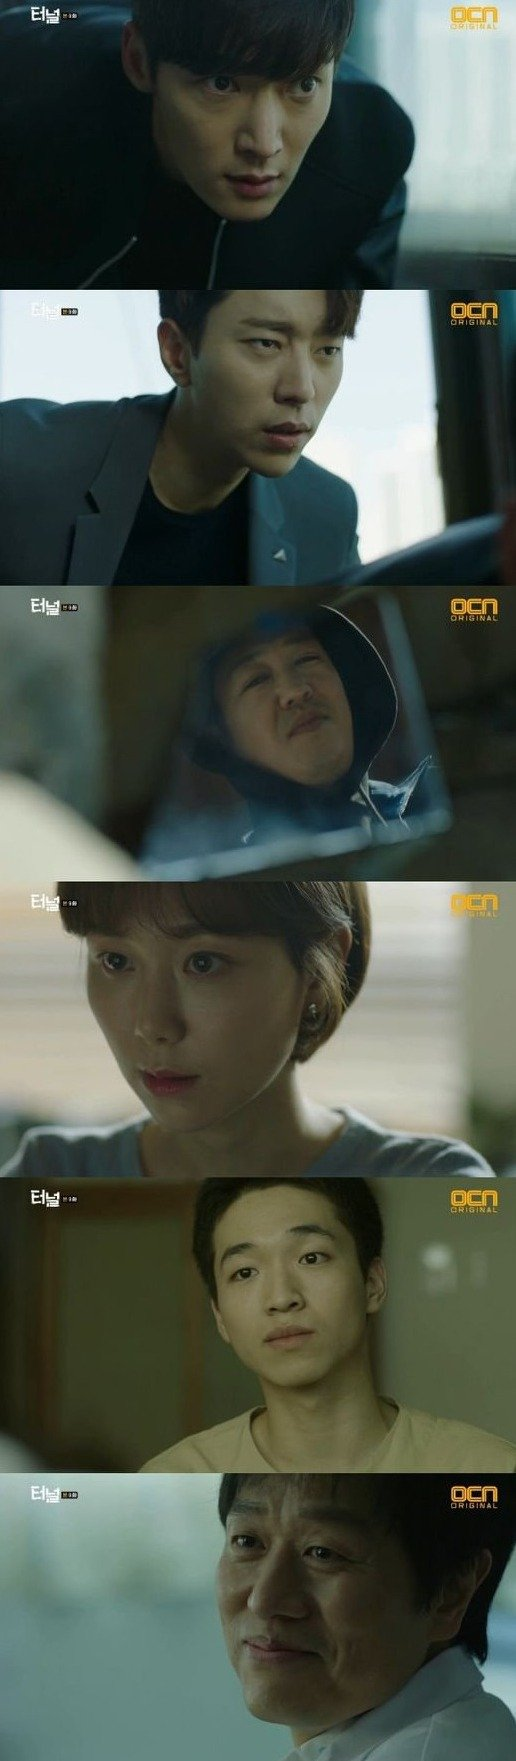 [Spoiler] Added episodes 9 and 10 captures for the Korean drama 'Tunnel – Drama'